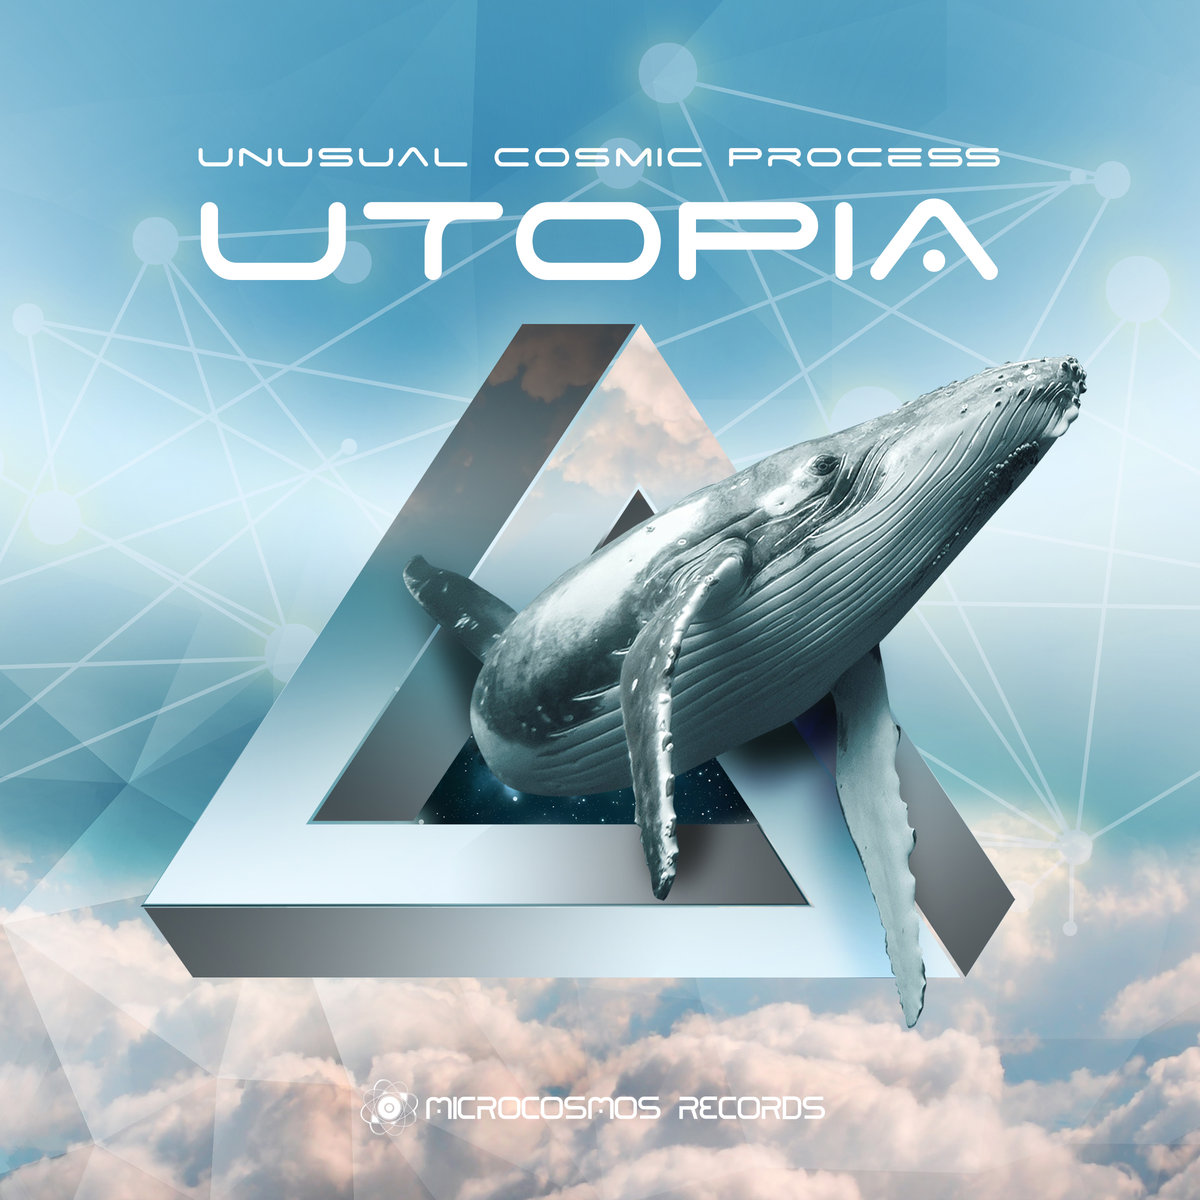 Tentura - Theme Patcher (Unusual Cosmic Process Remix - Album Version) @ 'Utopia' album (ambient, chill-out)